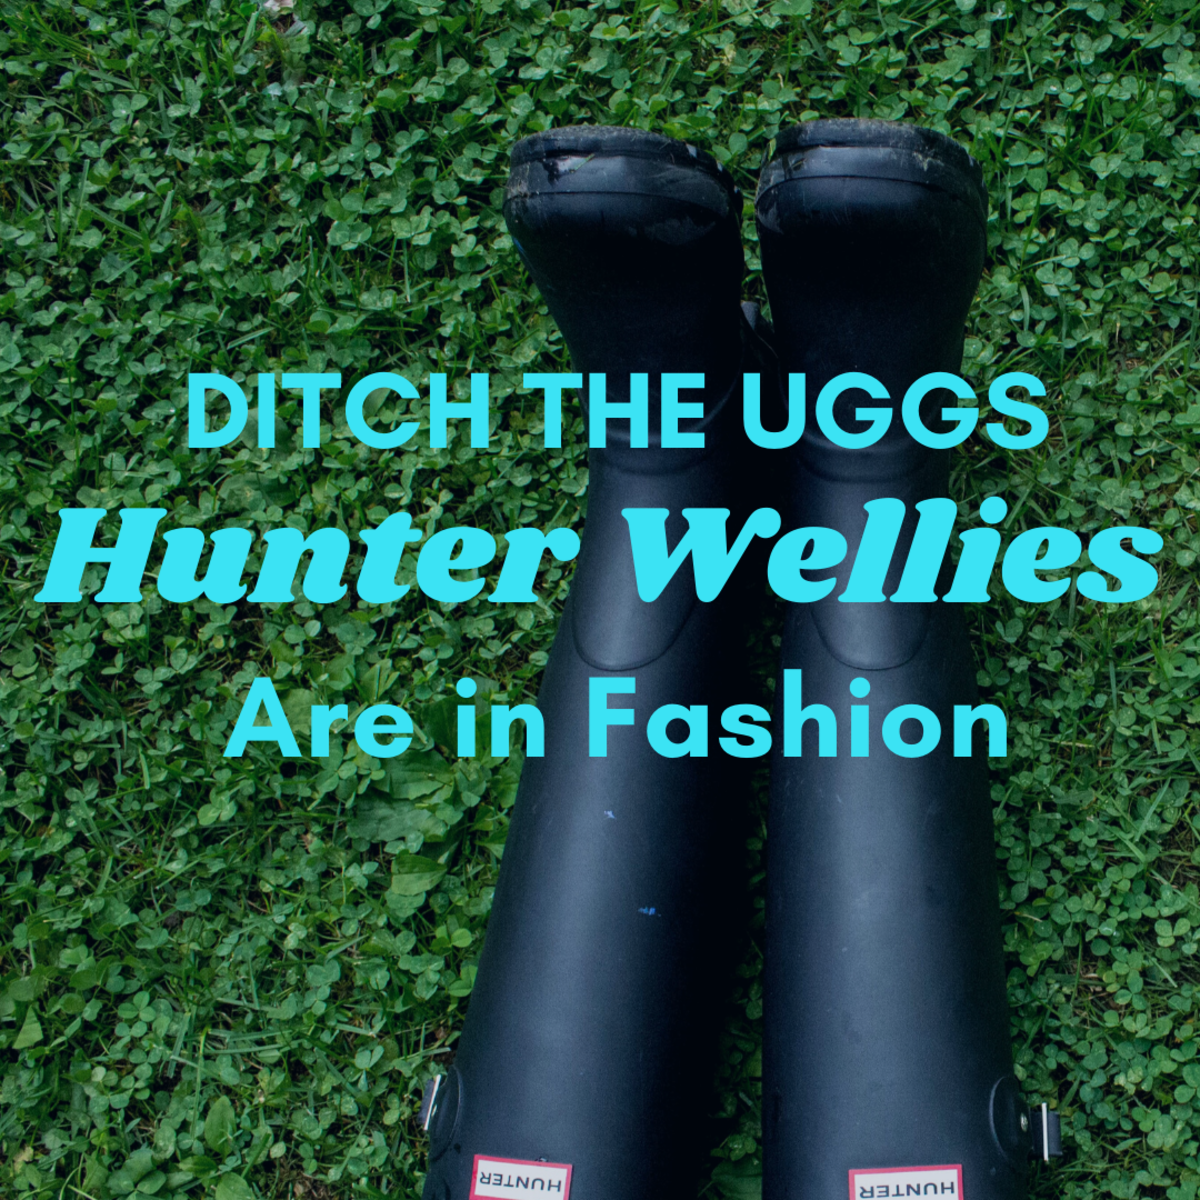 Skip the Ugg Boots for Hunter Wellies